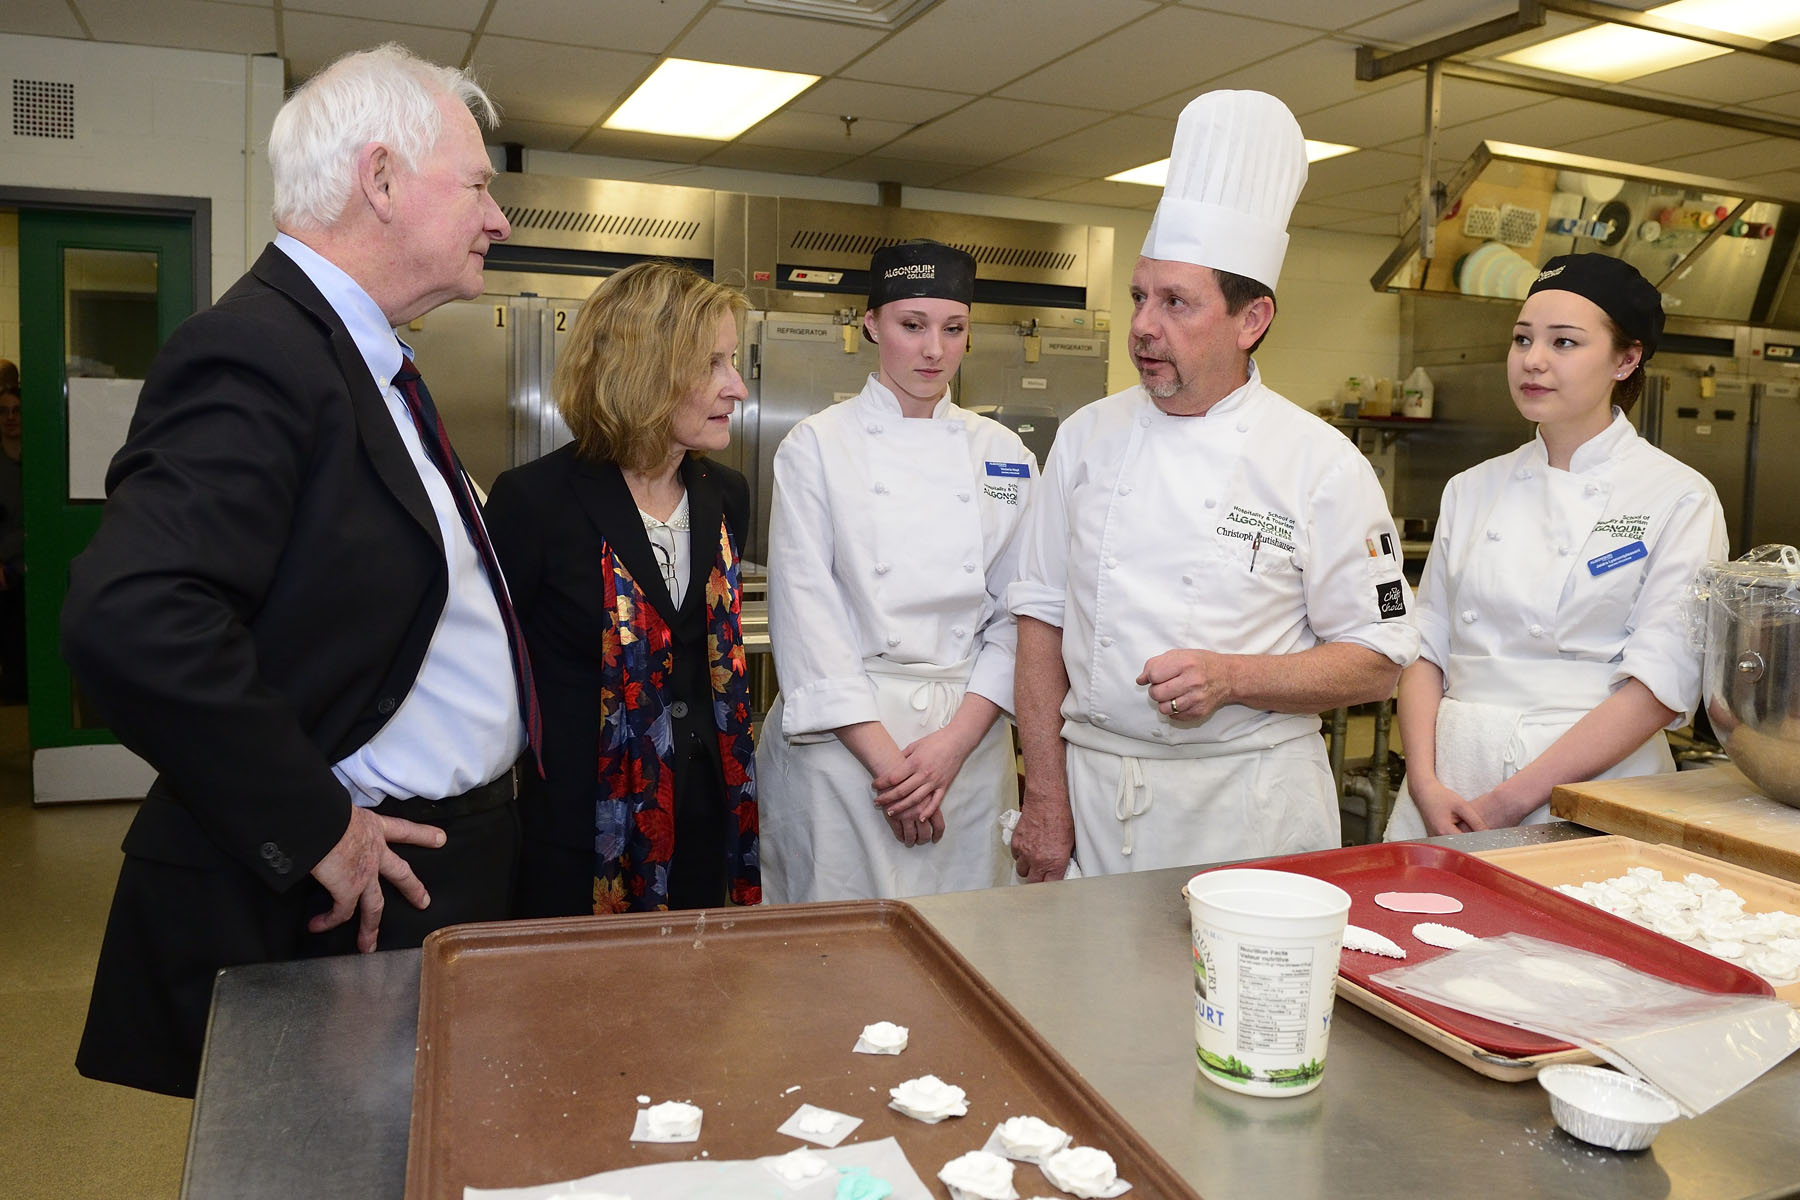 His Excellency was also welcomed to the School of Hospitality and Tourism, where he thanked culinary students who, from time to time, come to the kitchens of Rideau Hall as part of their training.